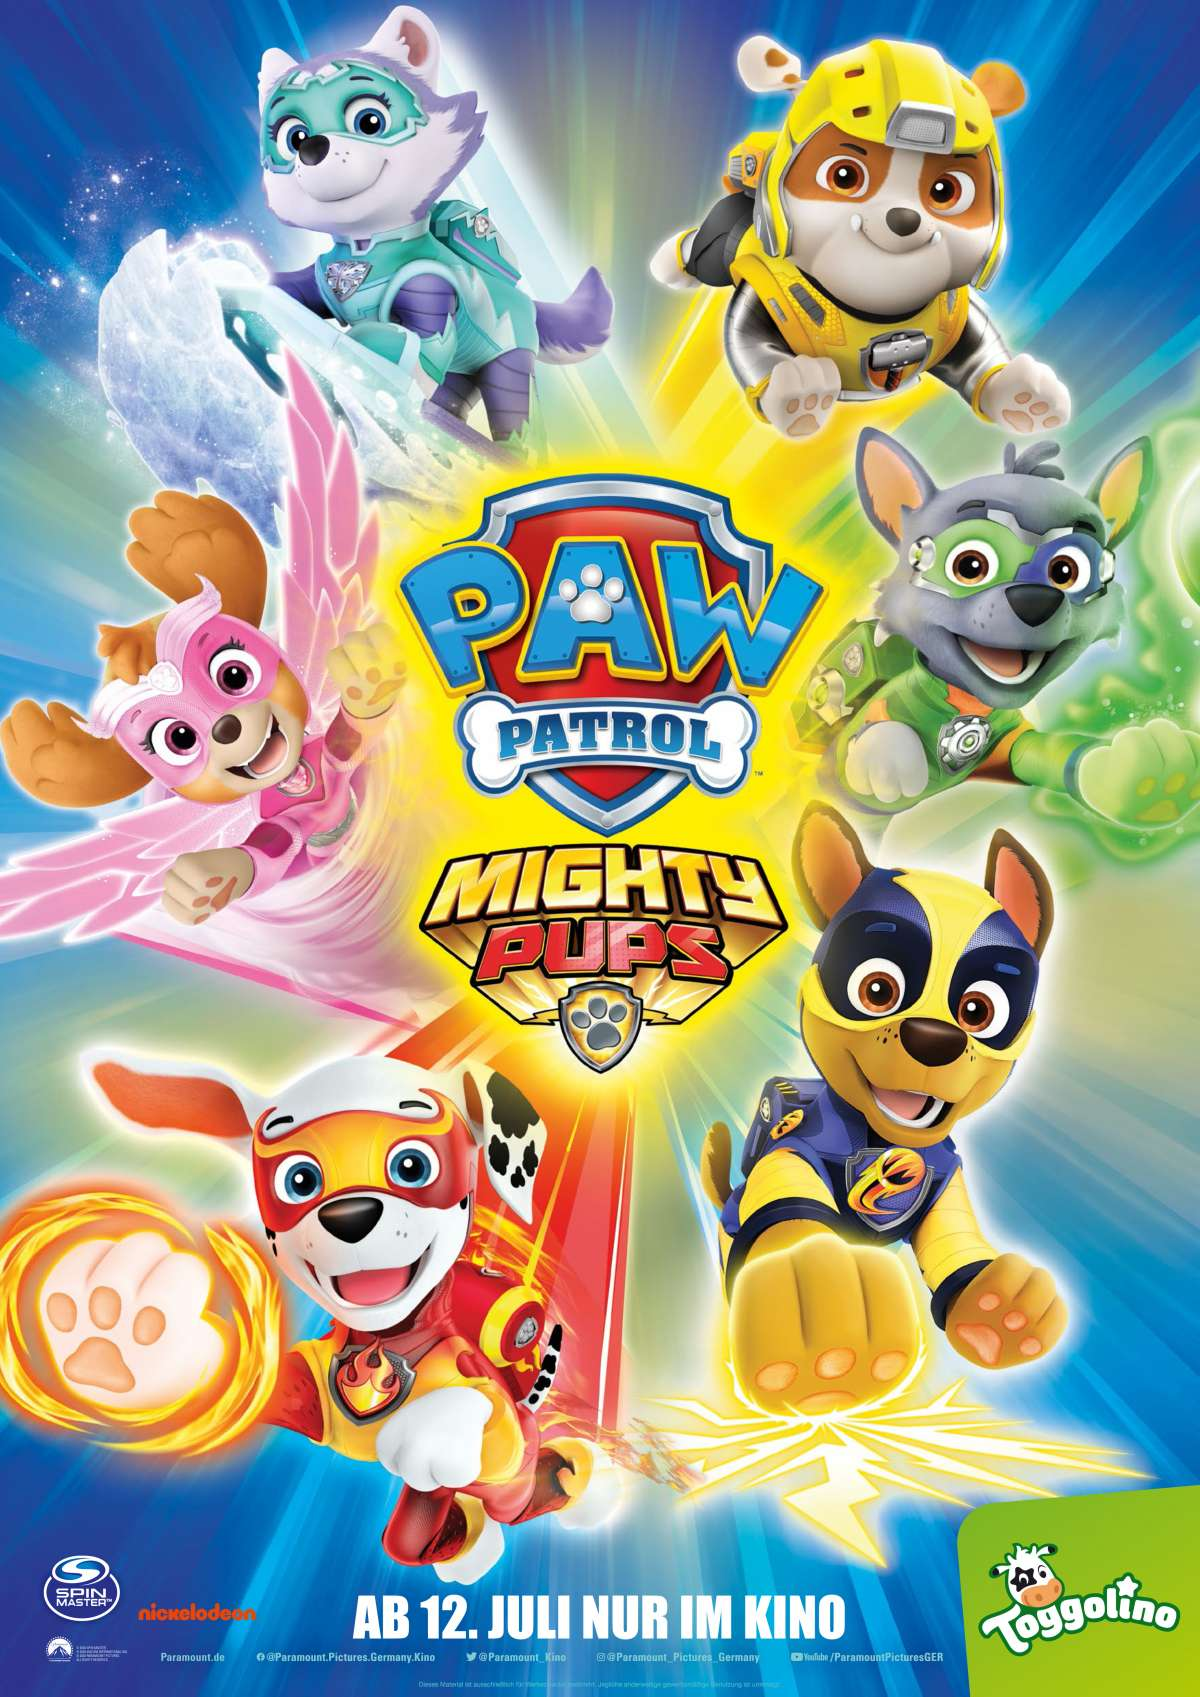 Paw Patrol: Mighty Pups - Cineplex  - Marburg